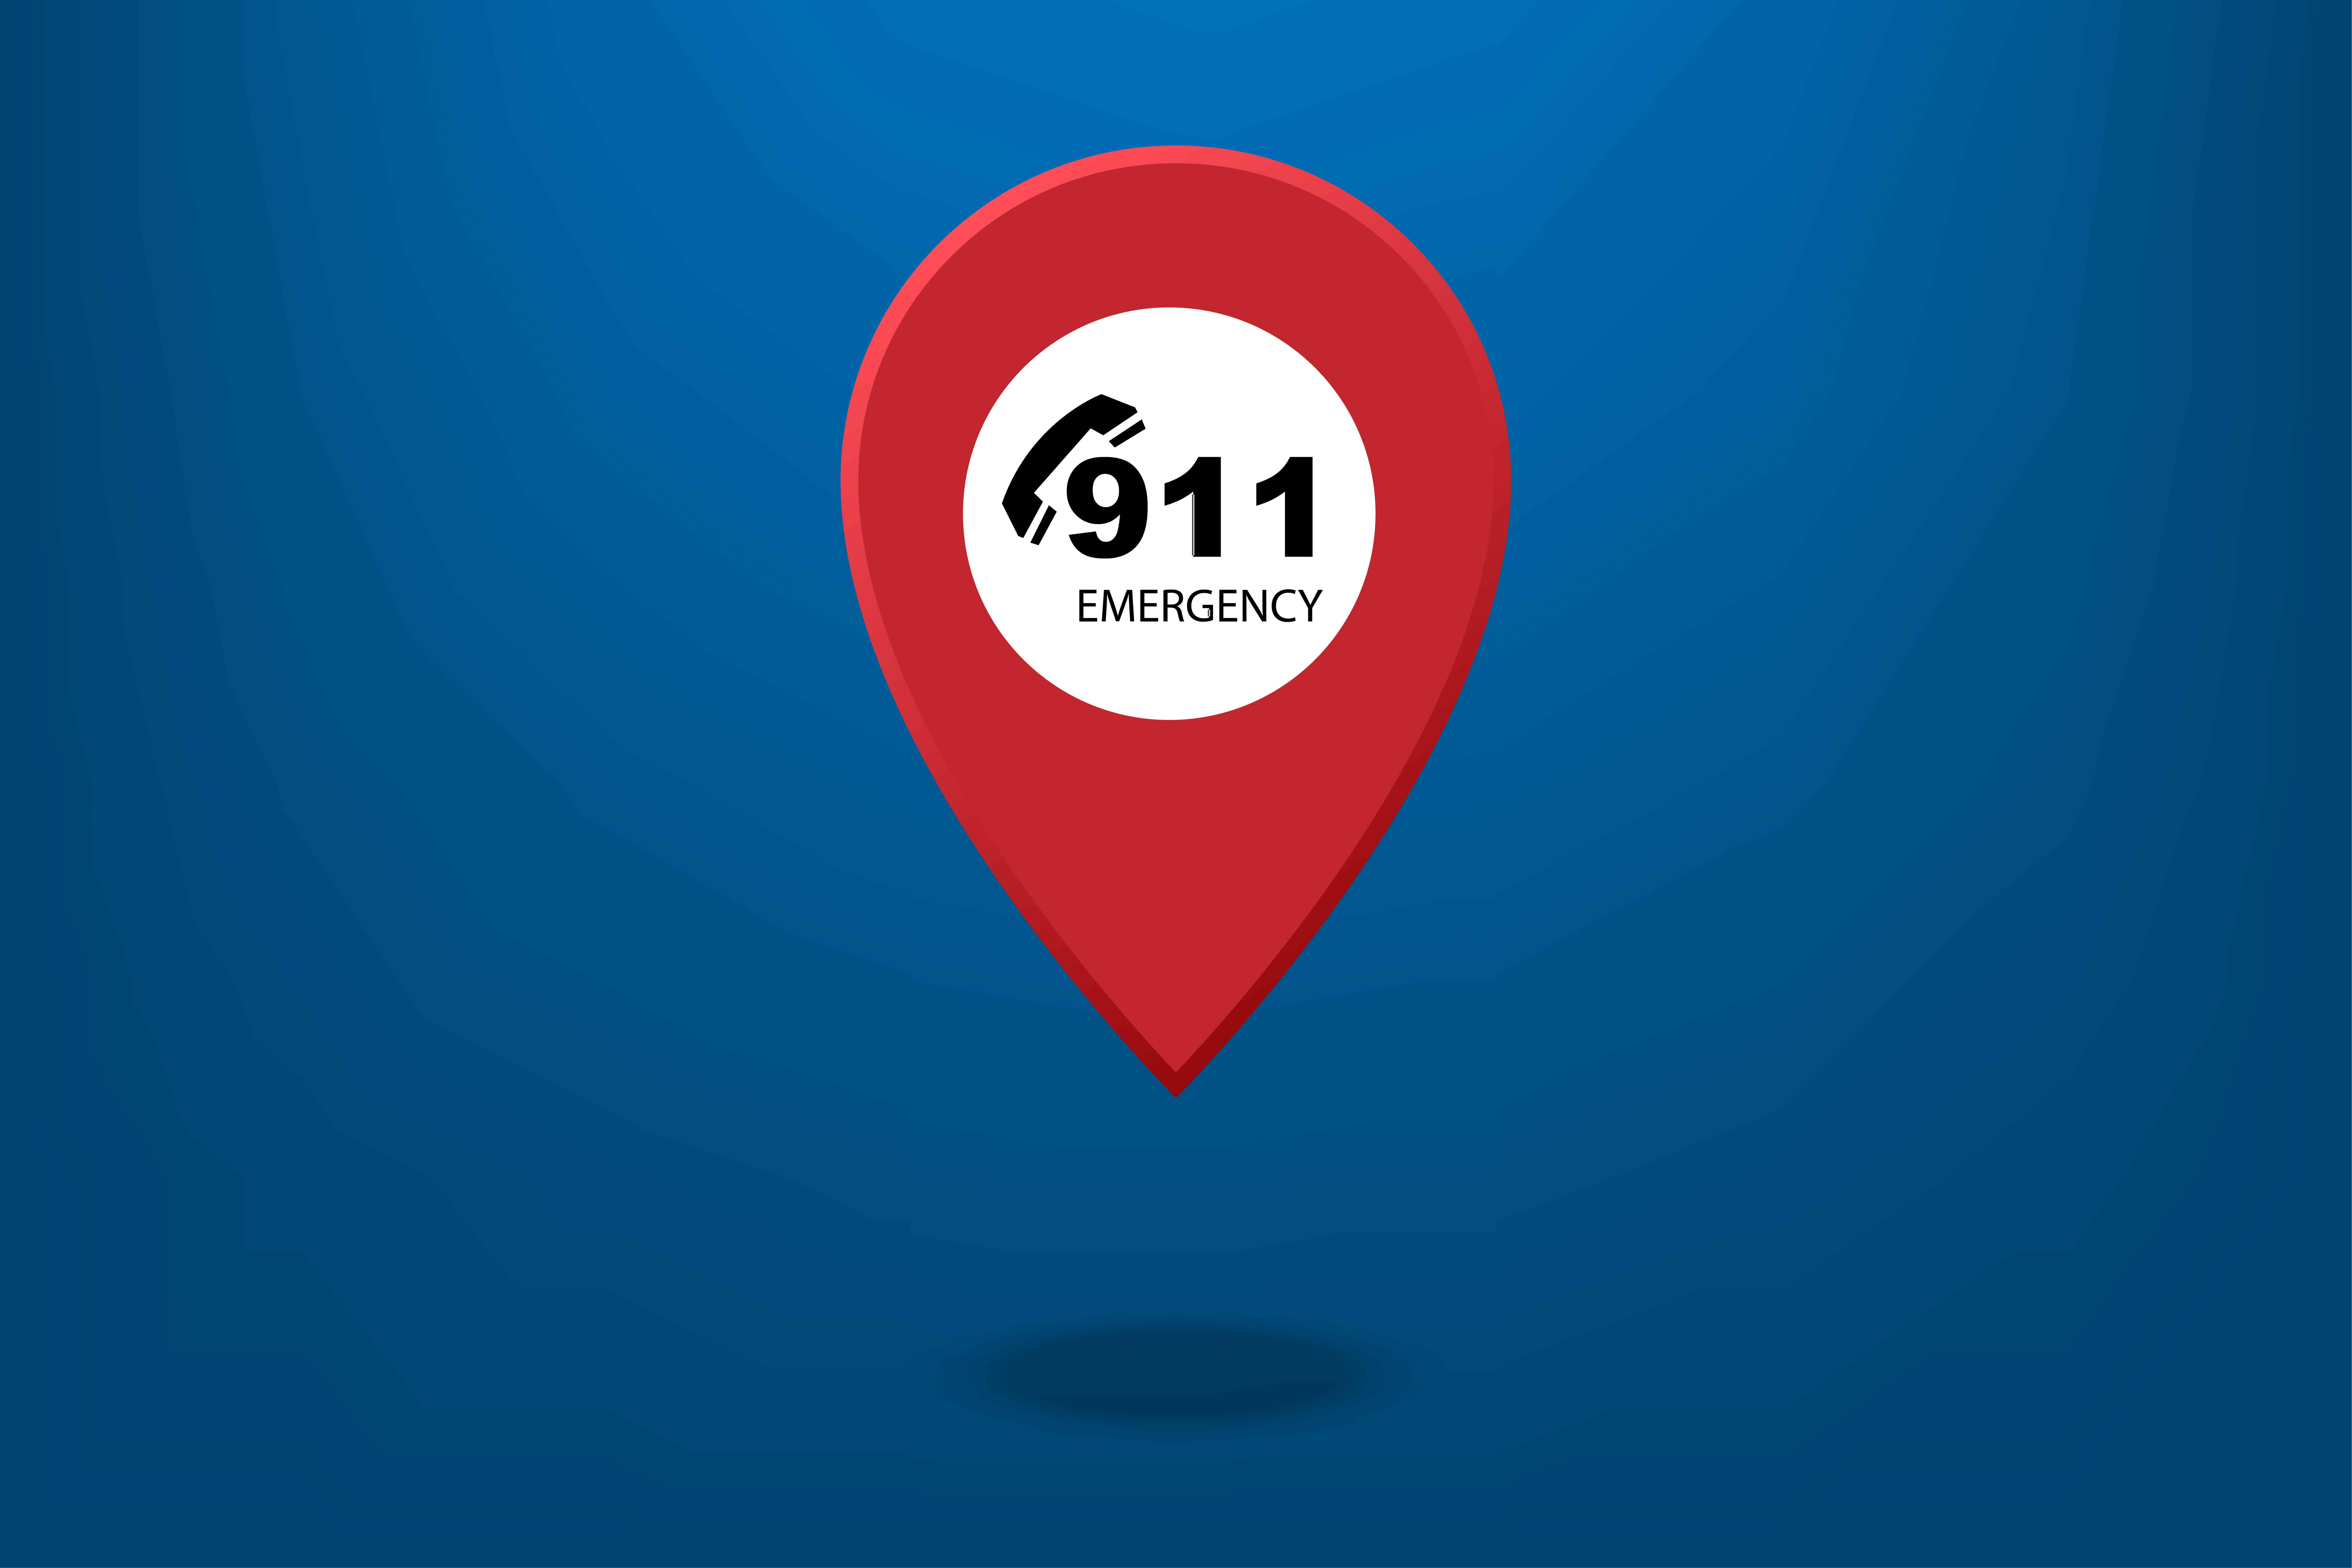 Accurate in-building location technology for wireless 911 calls pushed by FCC